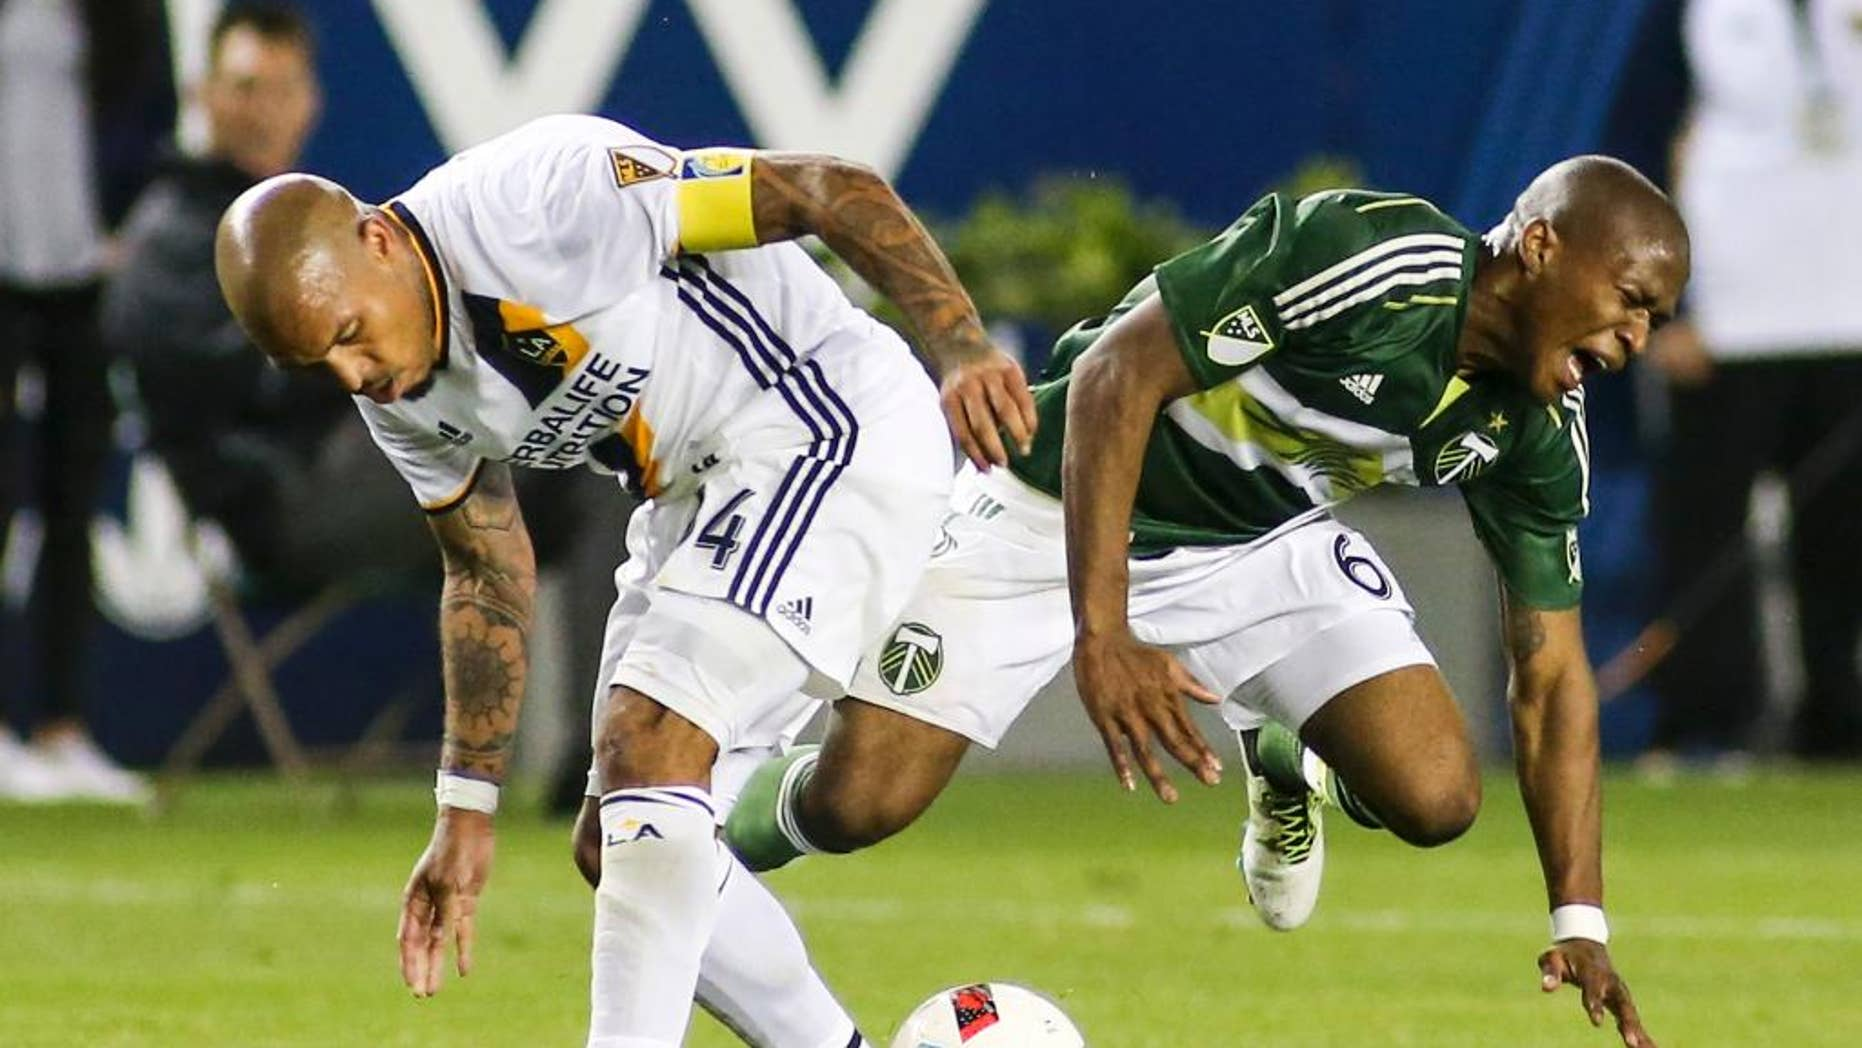 Los Angeles Galaxy midfielder Nigel de Jong, left, crashes into Portland Timbers midfielder Darlington Nagbe during the second half of an MLS soccer game in Carson, Calif., Sunday April 10, 2016. The game ended in a 1-1 draw. (AP Photo/Ringo H.W. Chiu)